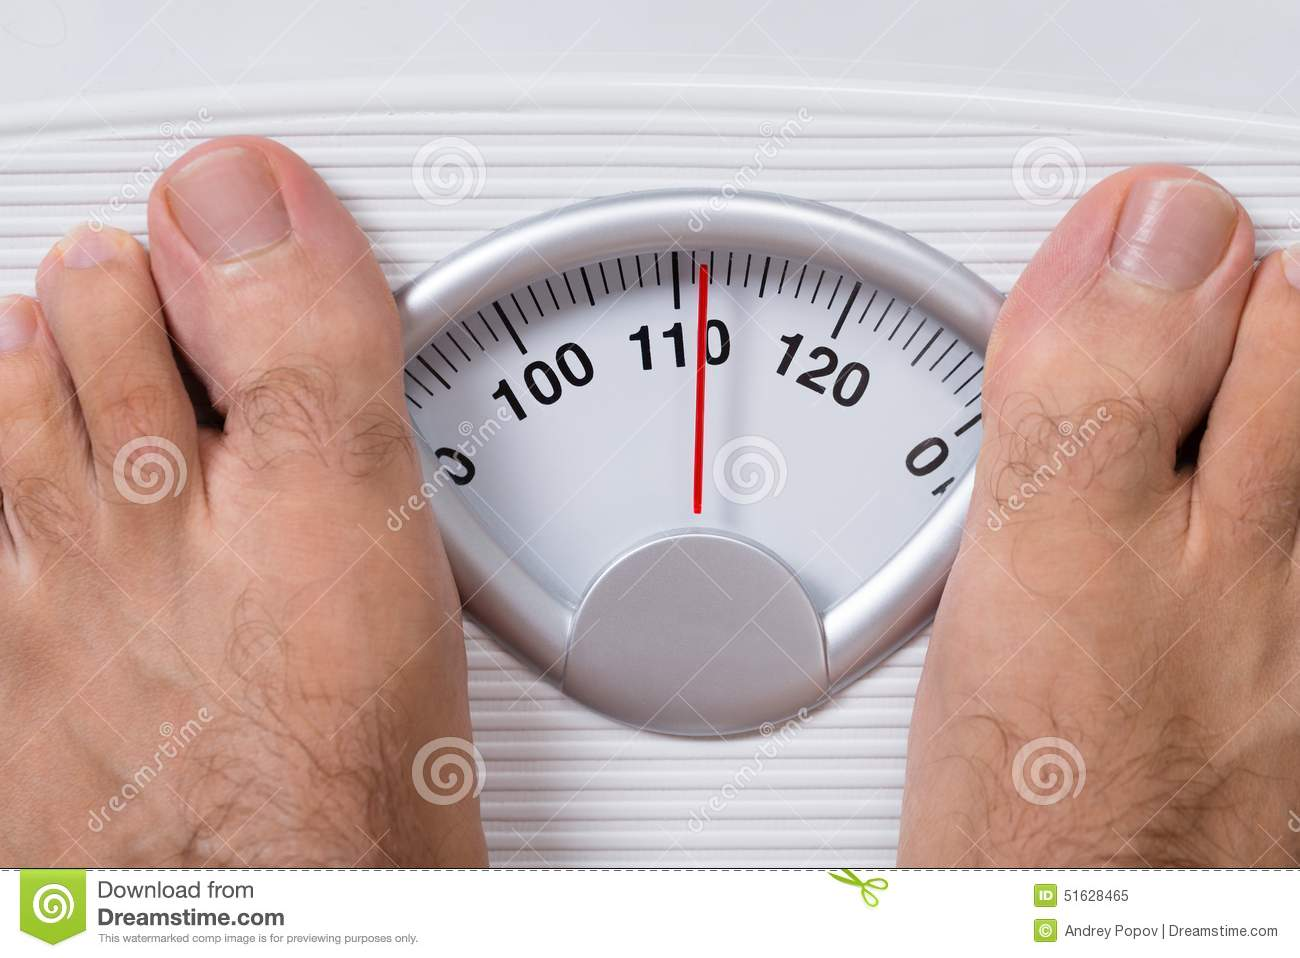 Closeup Of Mans Feet On Weight Scale